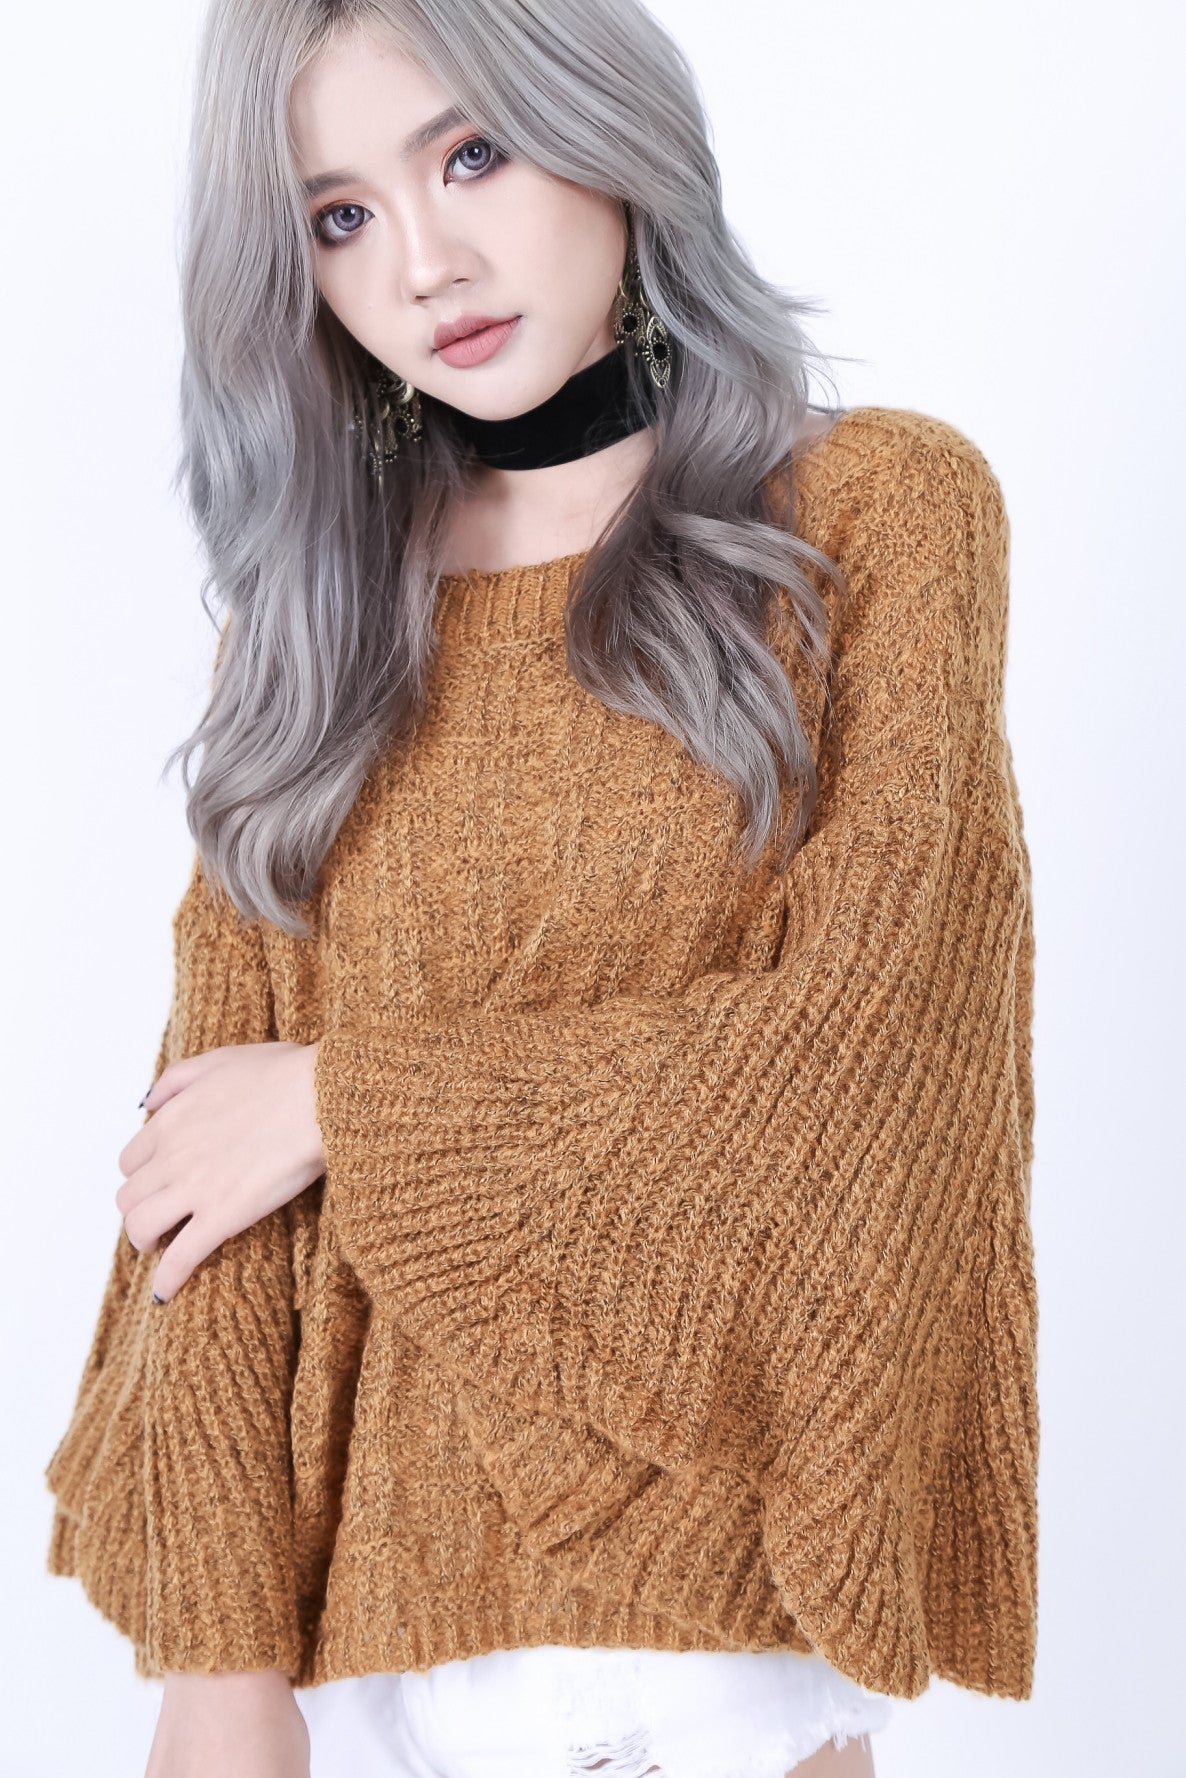 BELL SLEEVES KNIT TOP IN CAMEL - TOPAZETTE